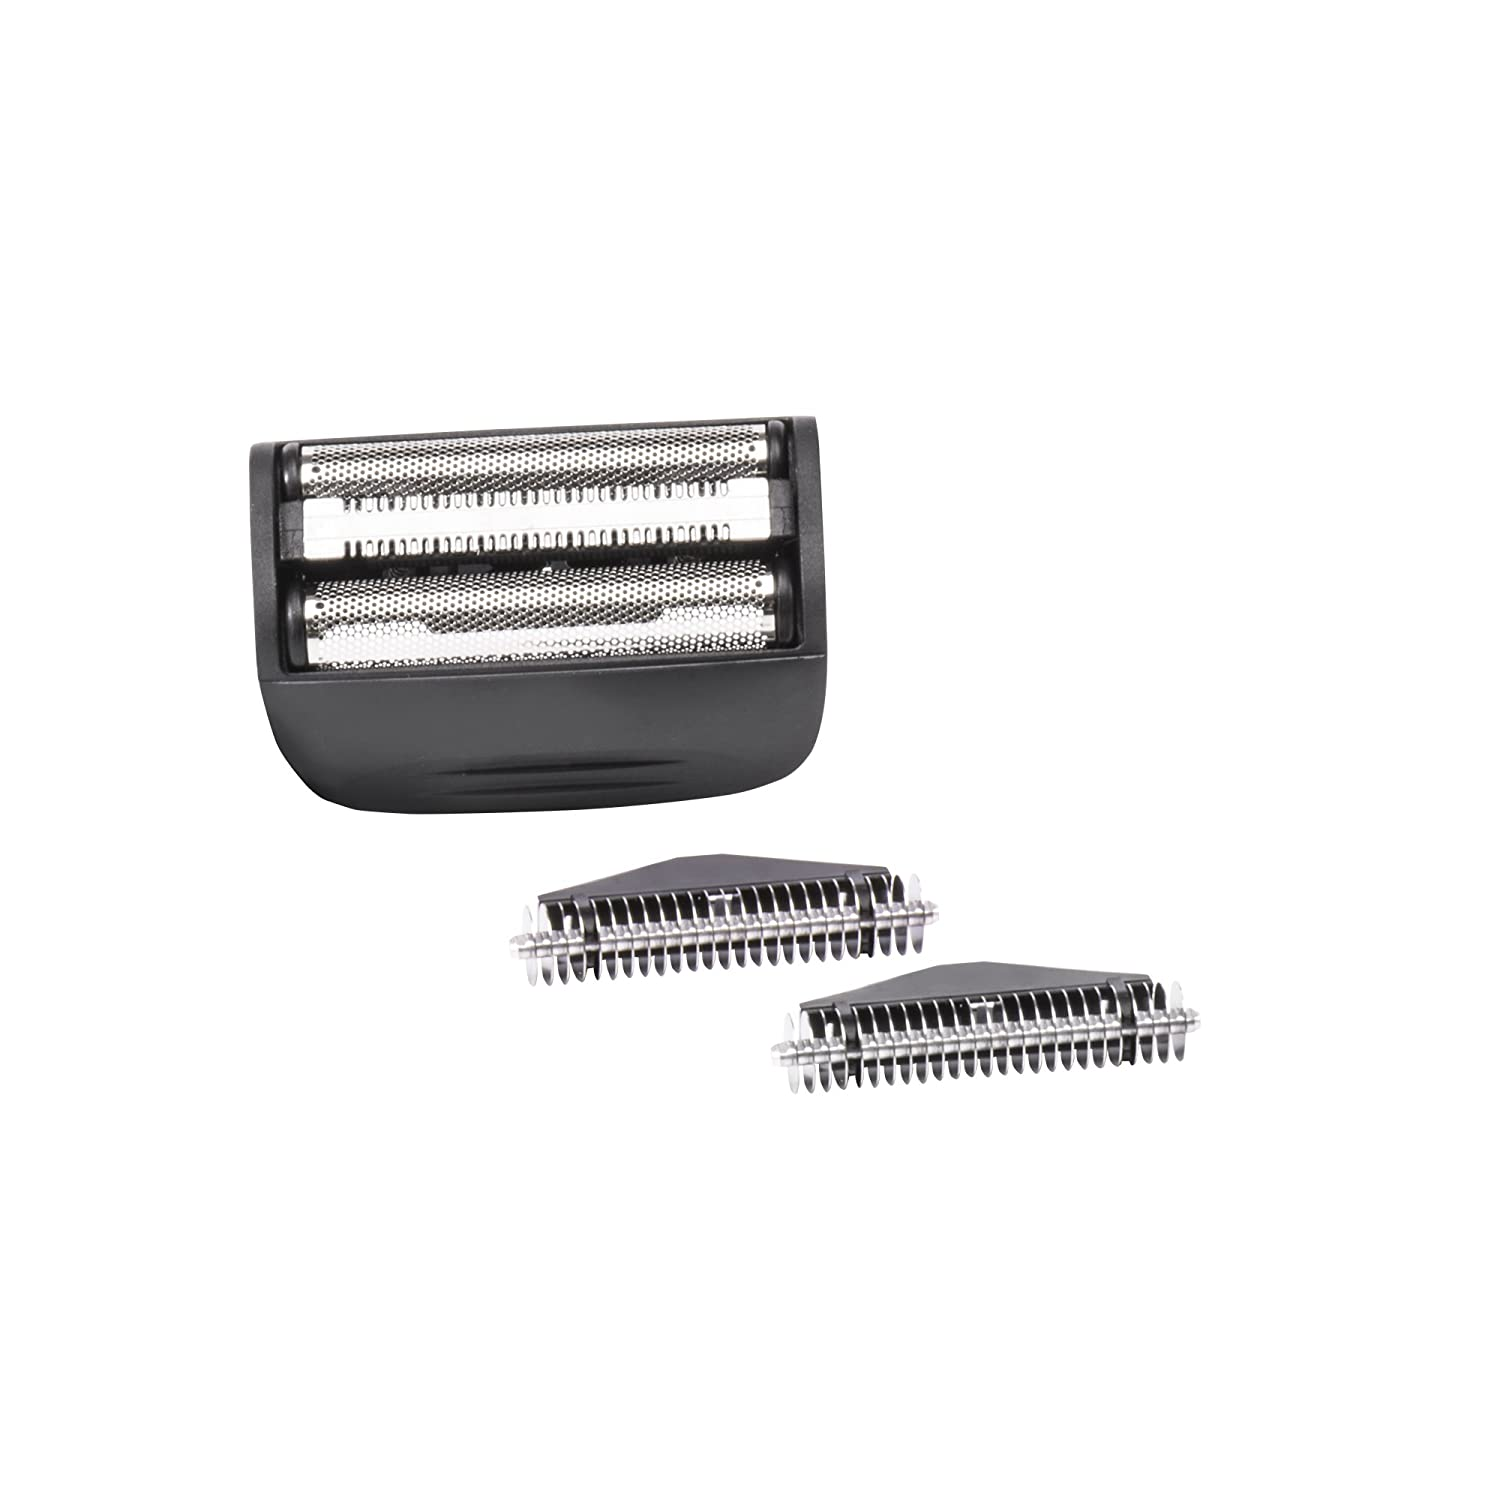 Remington SPF-PF Replacement Head and Cutter Assembly for Model PF7400 Foil Shaver Remington Products